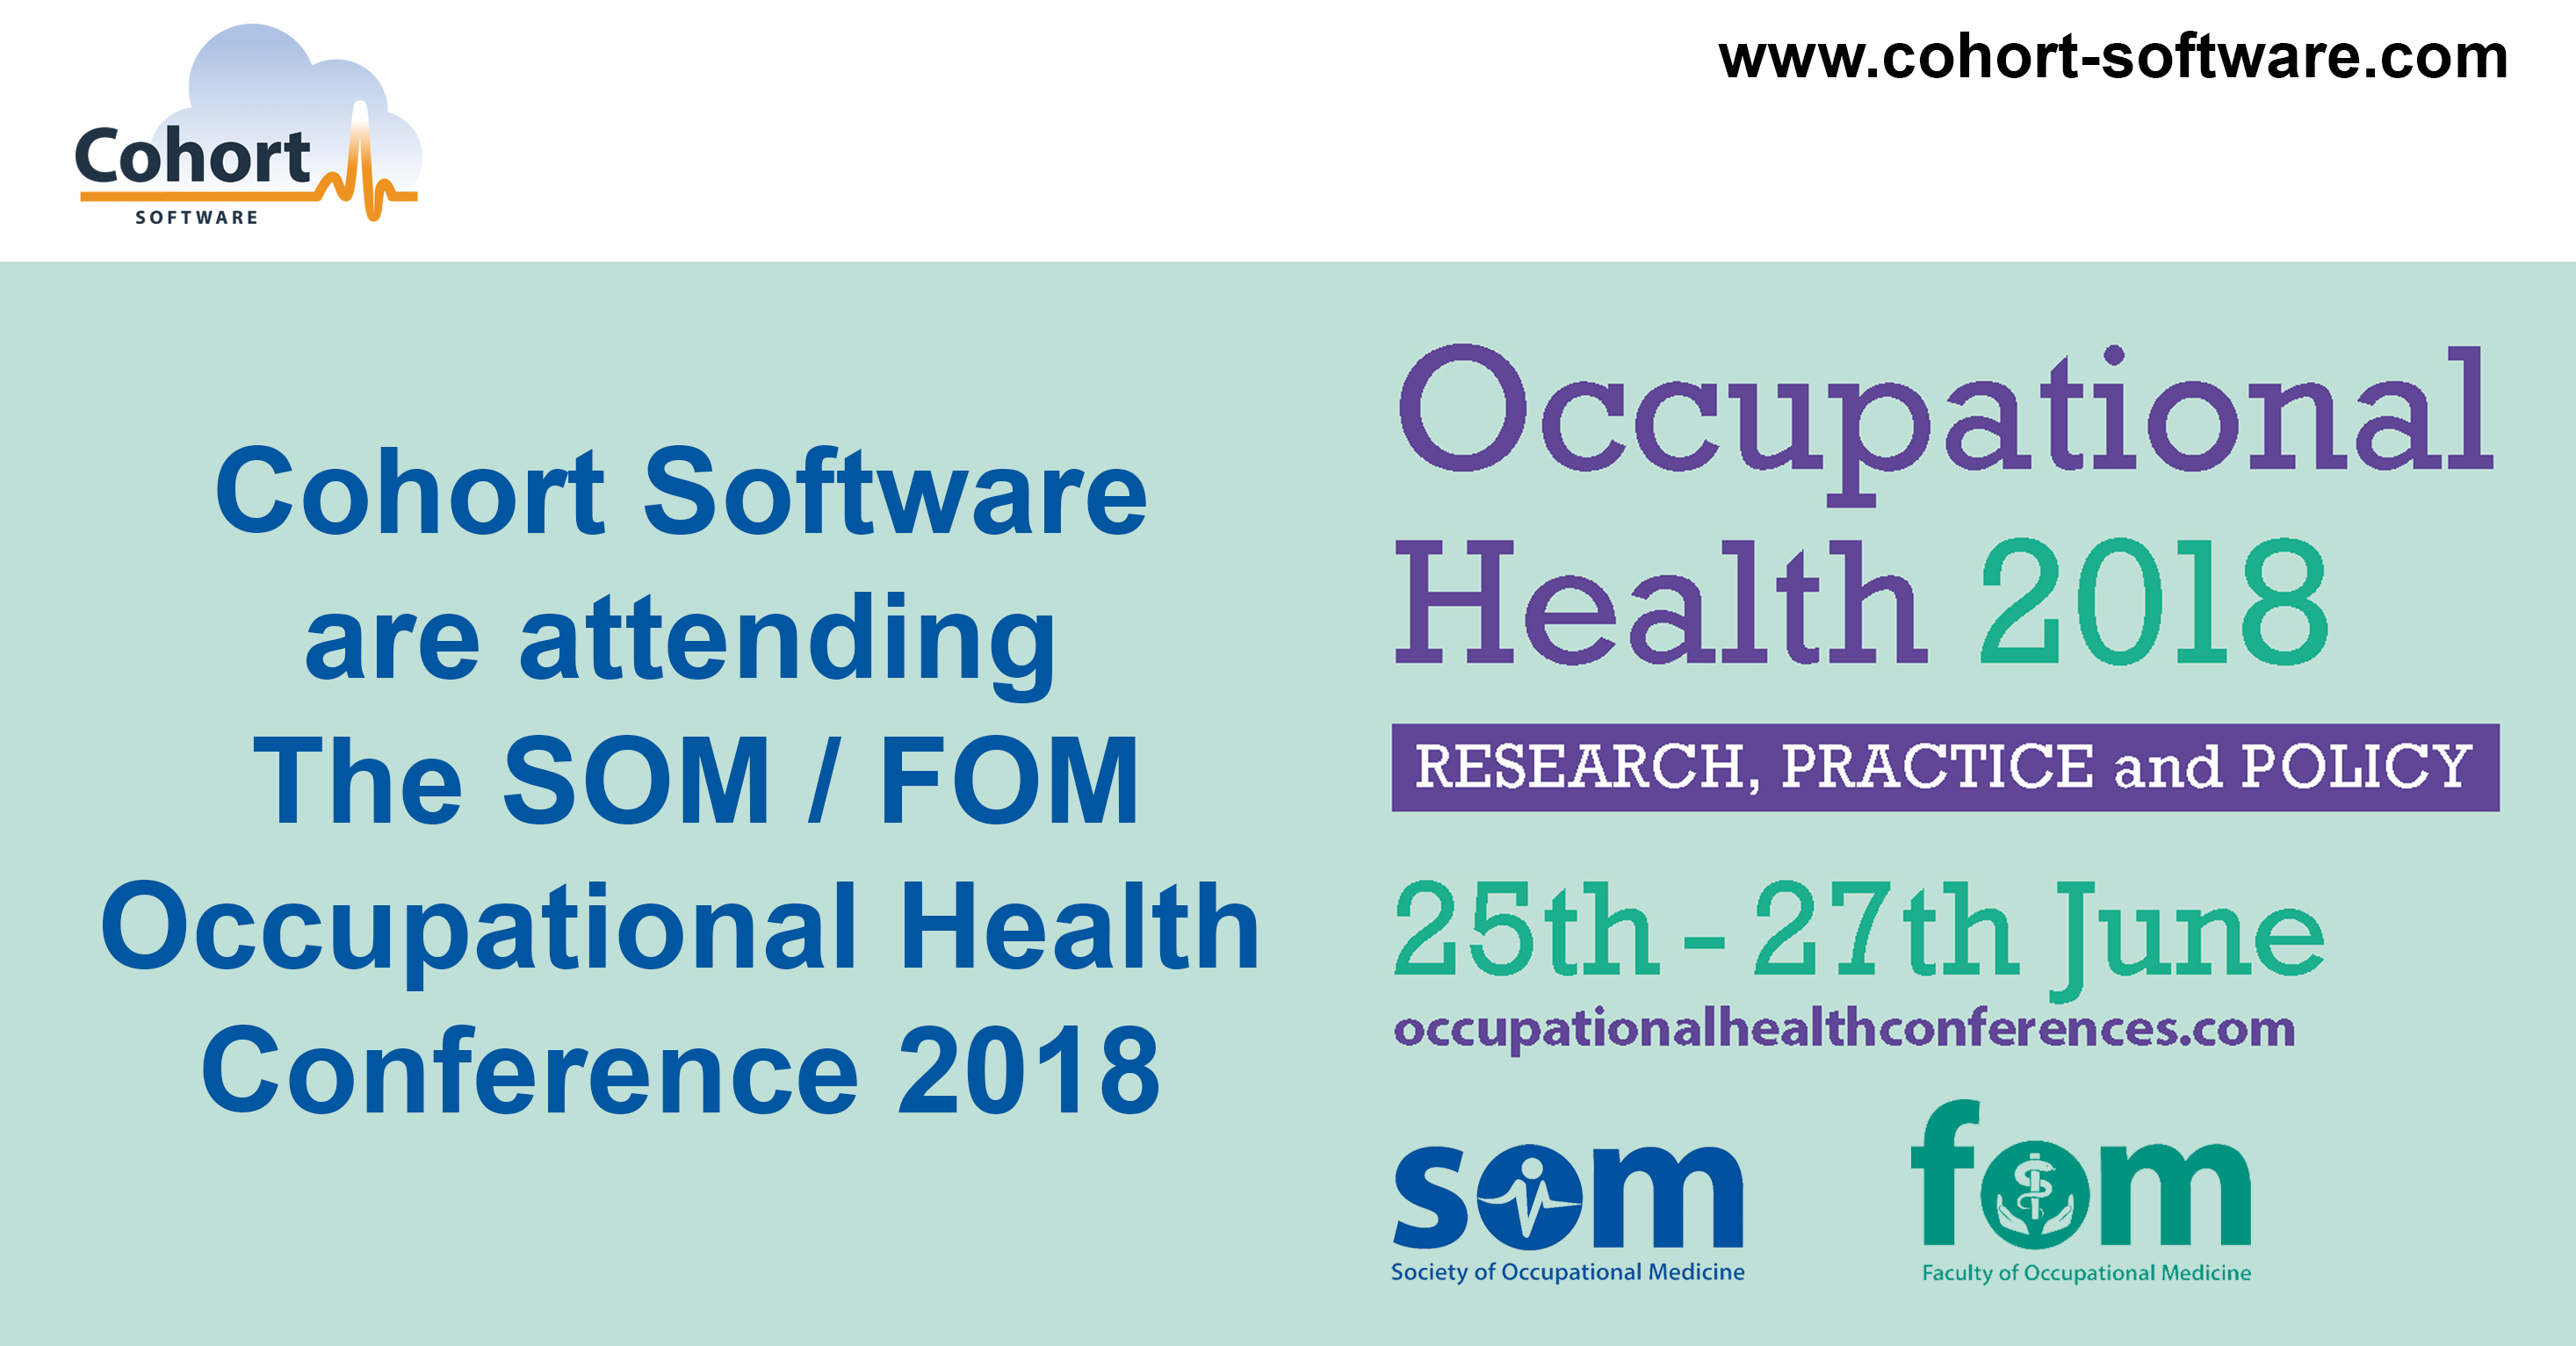 SOM/FOM Occupational Health Conference 2018